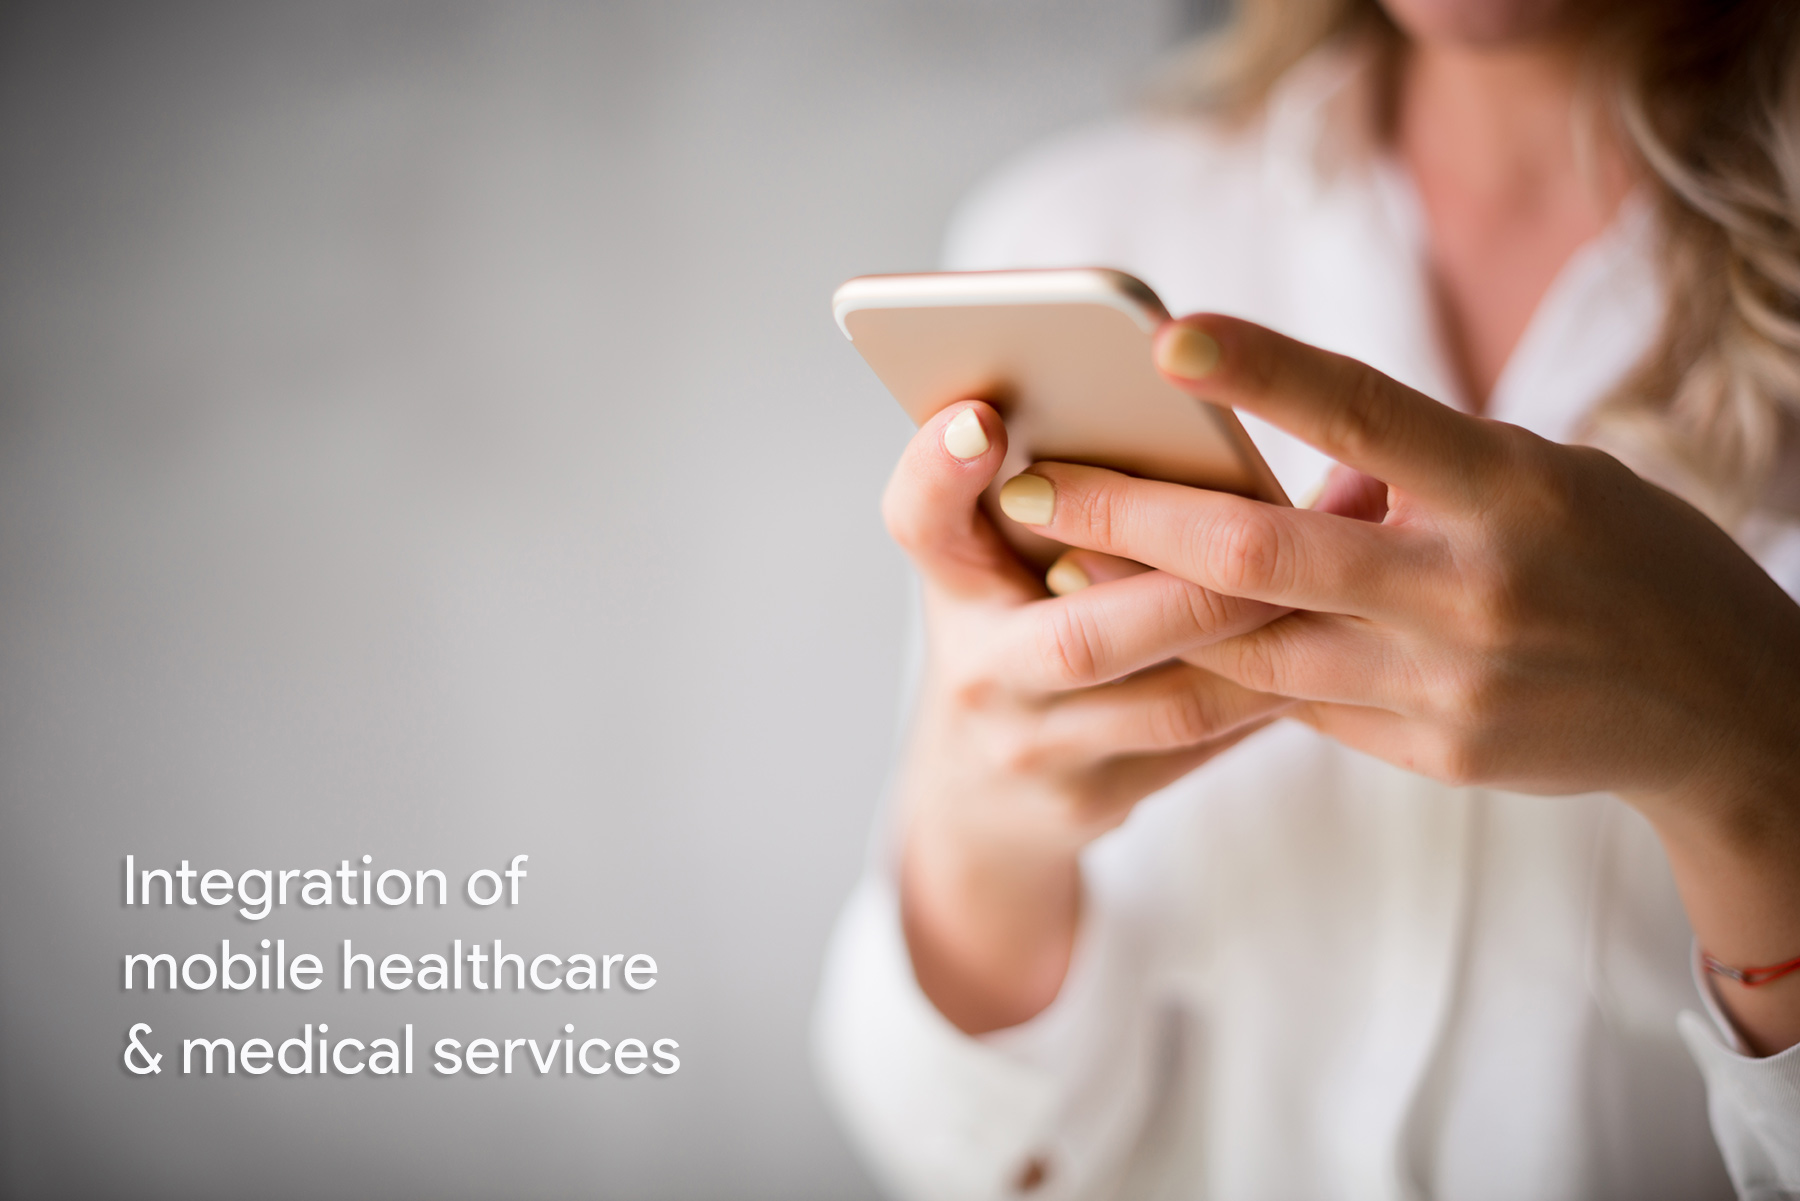 Integration of mobile healthcare services